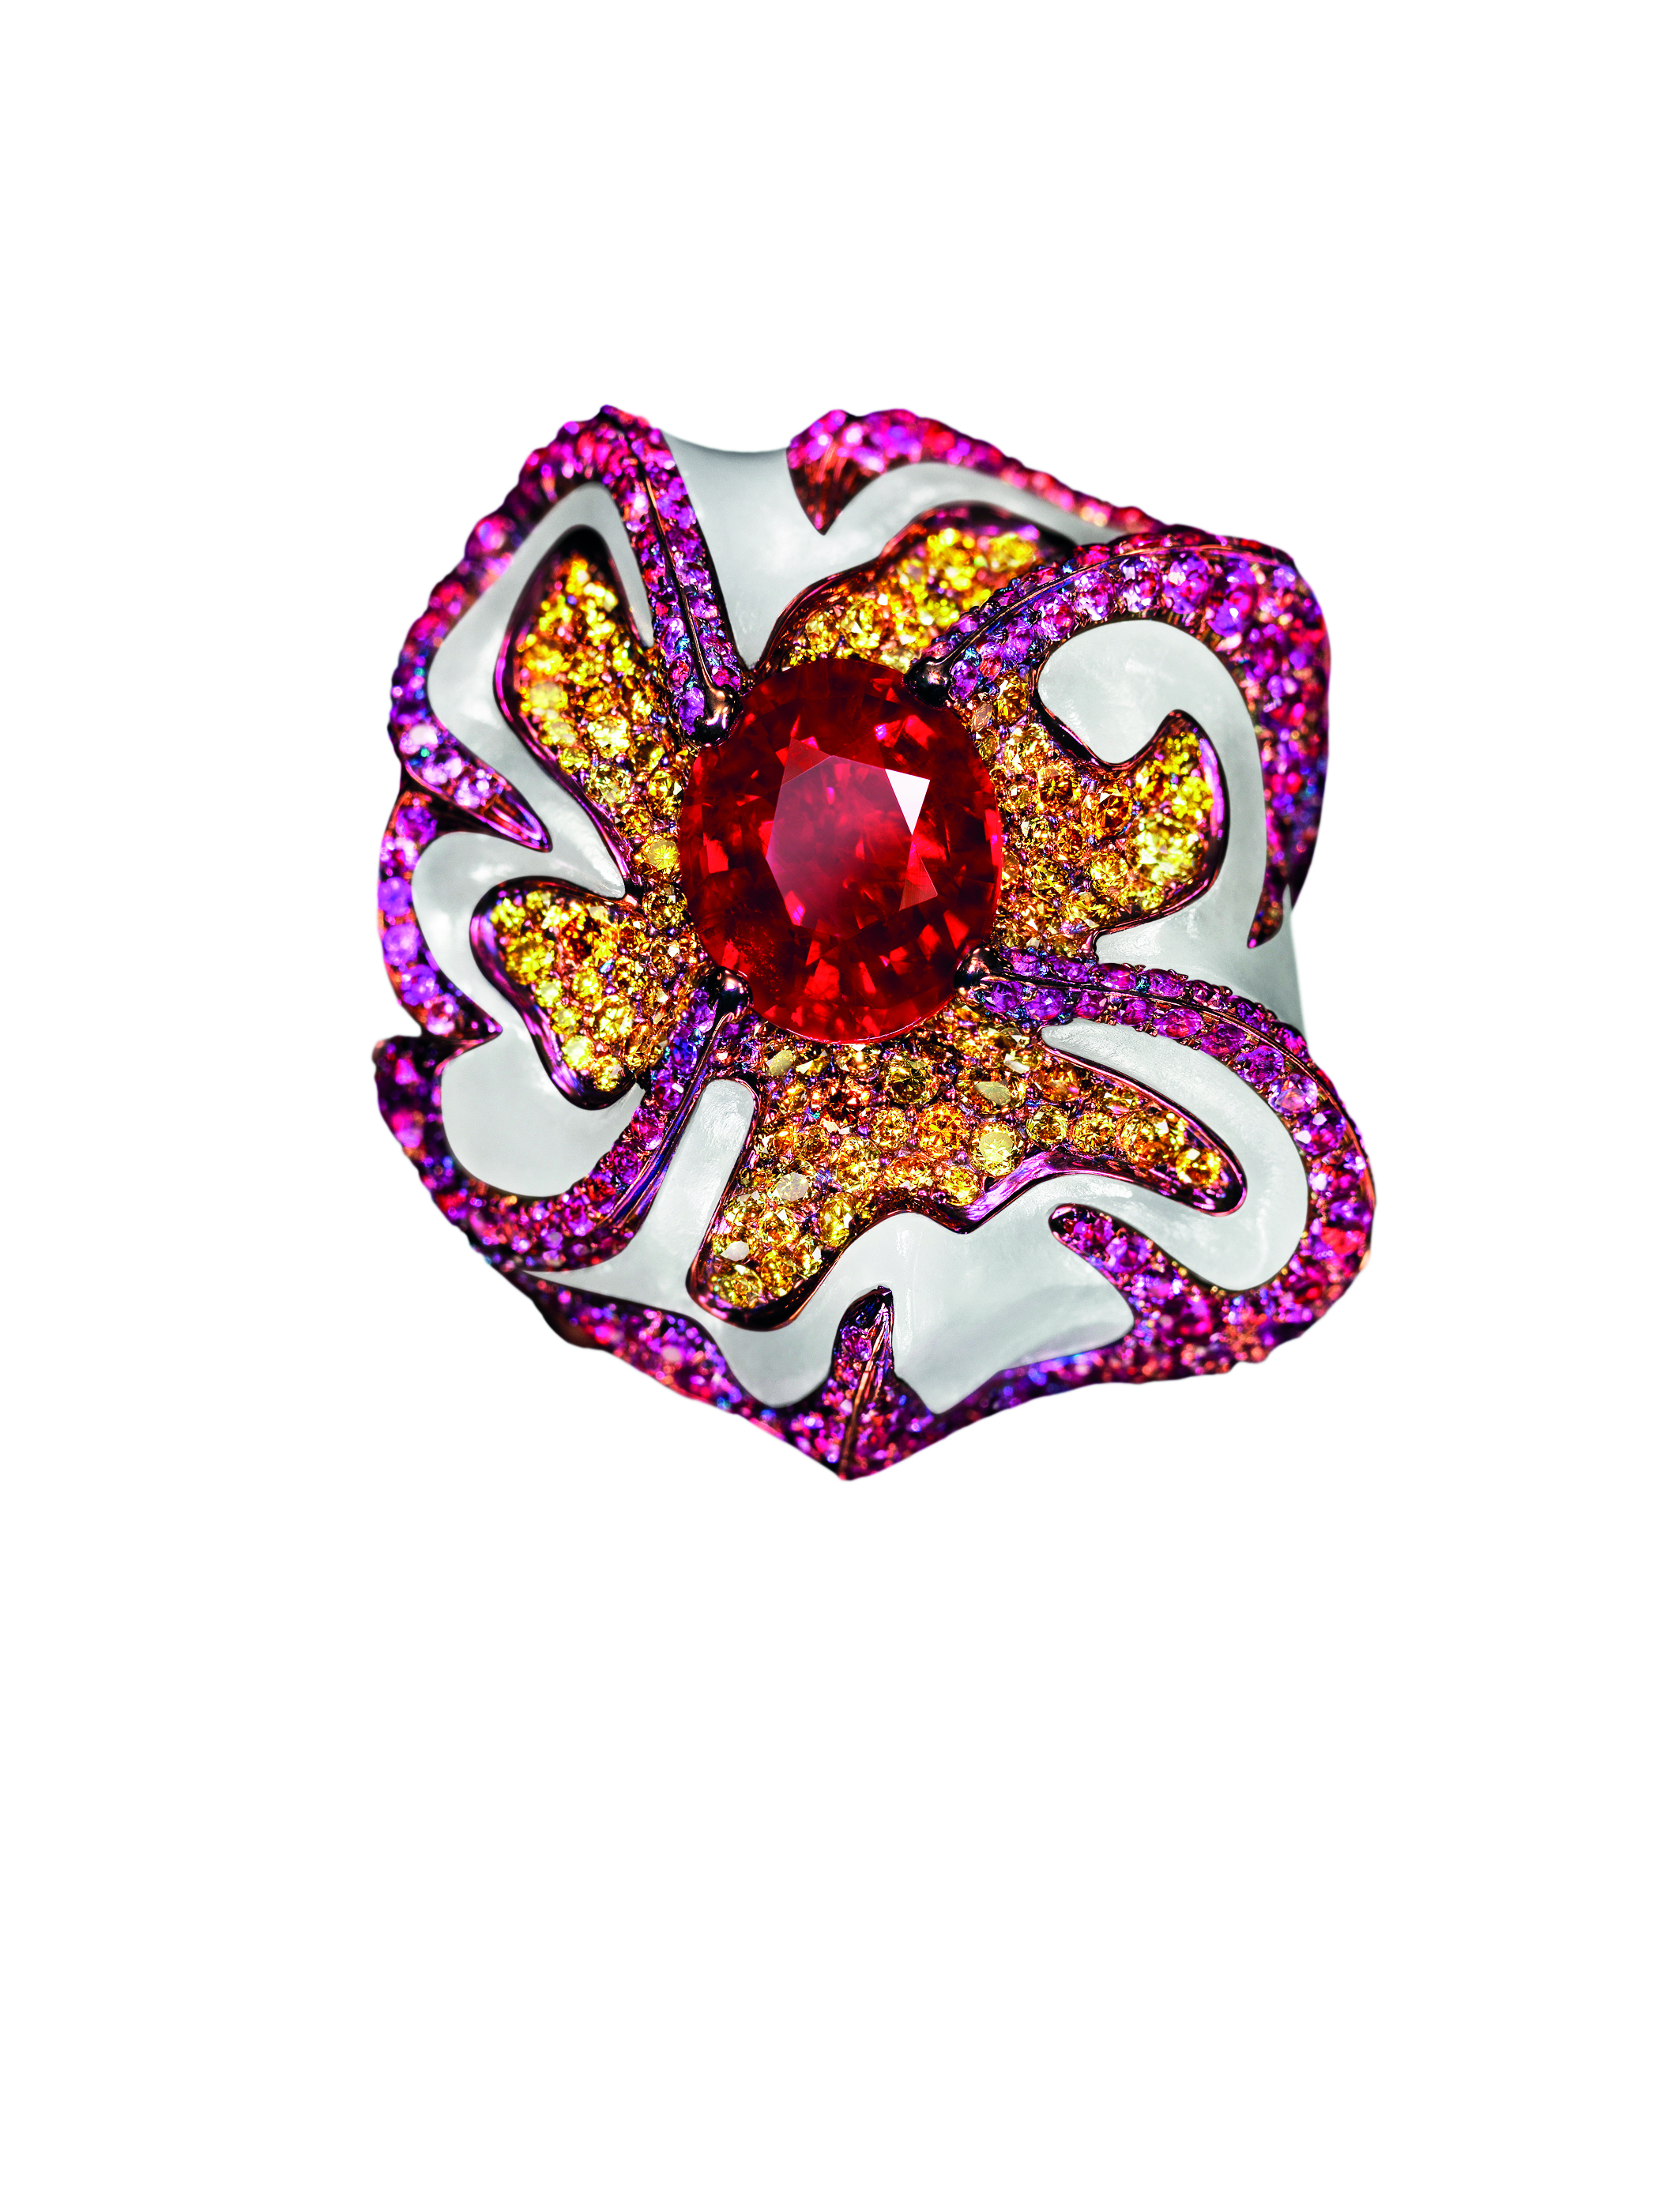 Top view of the Star of Light ring by Wallace Chan depicting a new plum flower_© Wallace Chan_from RUBY_published 2017.jpg